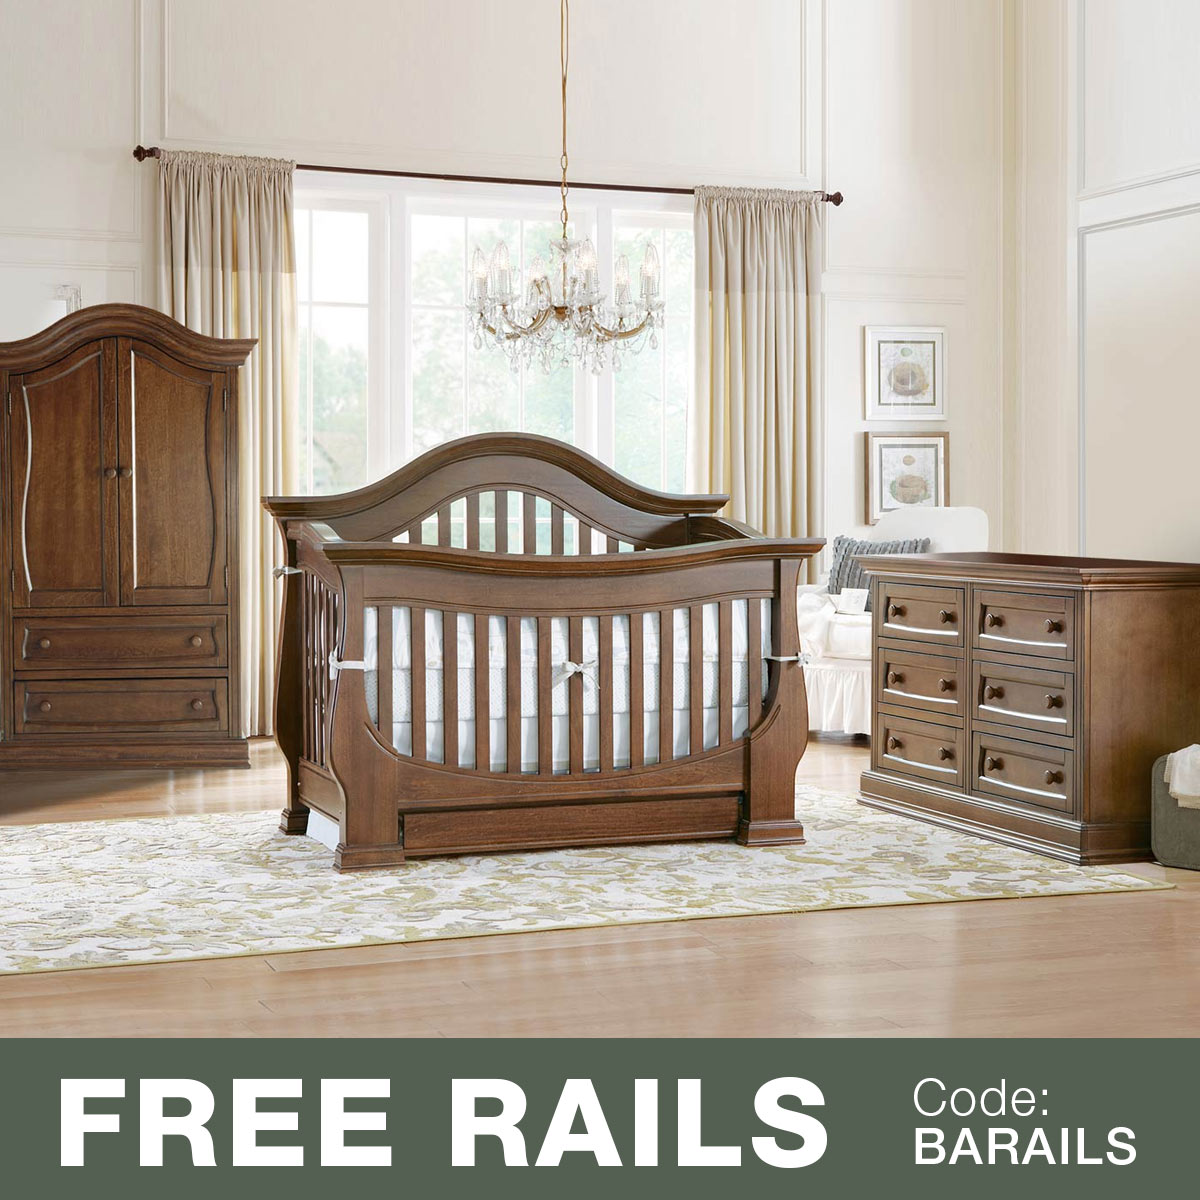 Baby Appleseed 3 Piece Nursery Set   Davenport 3 In 1 Convertible Crib,  Double Dresser And Armoire In Coco FREE SHIPPING